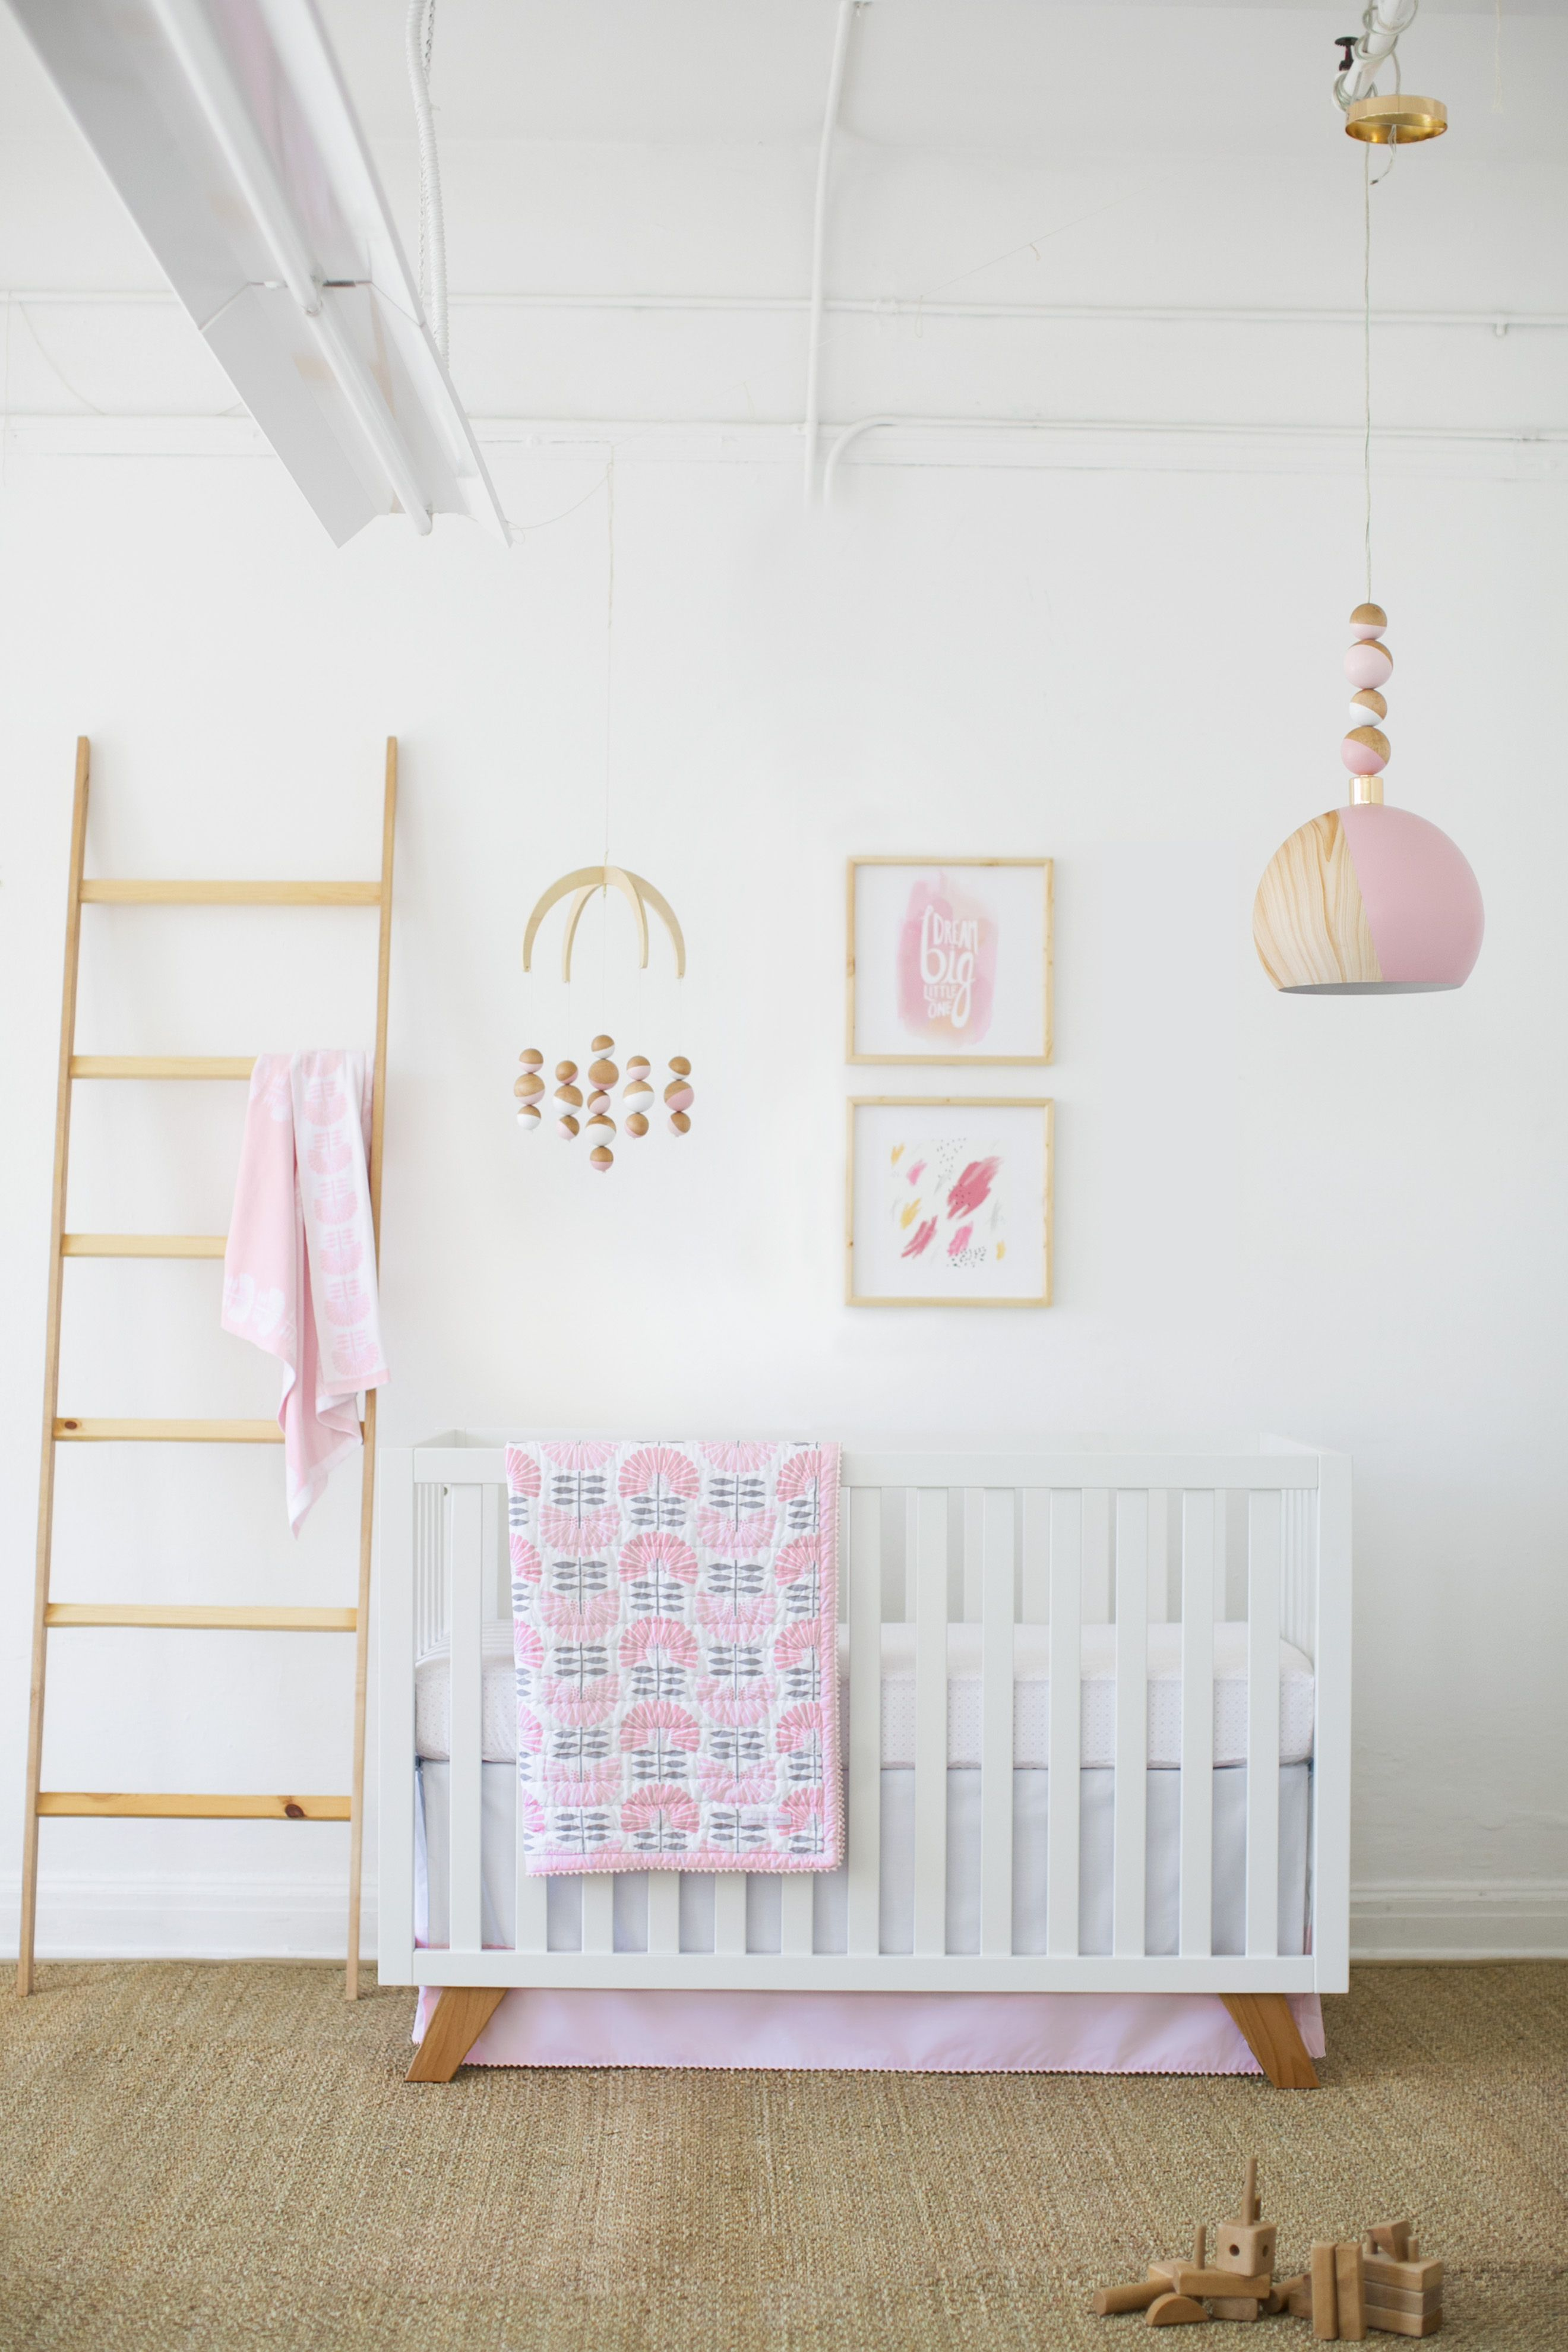 Wow! @ppbbaby's new nursery decor line hits it out of the park with sweet patterns and mid-century-inspired decor! Enter to win the whole collection. #PNpartner